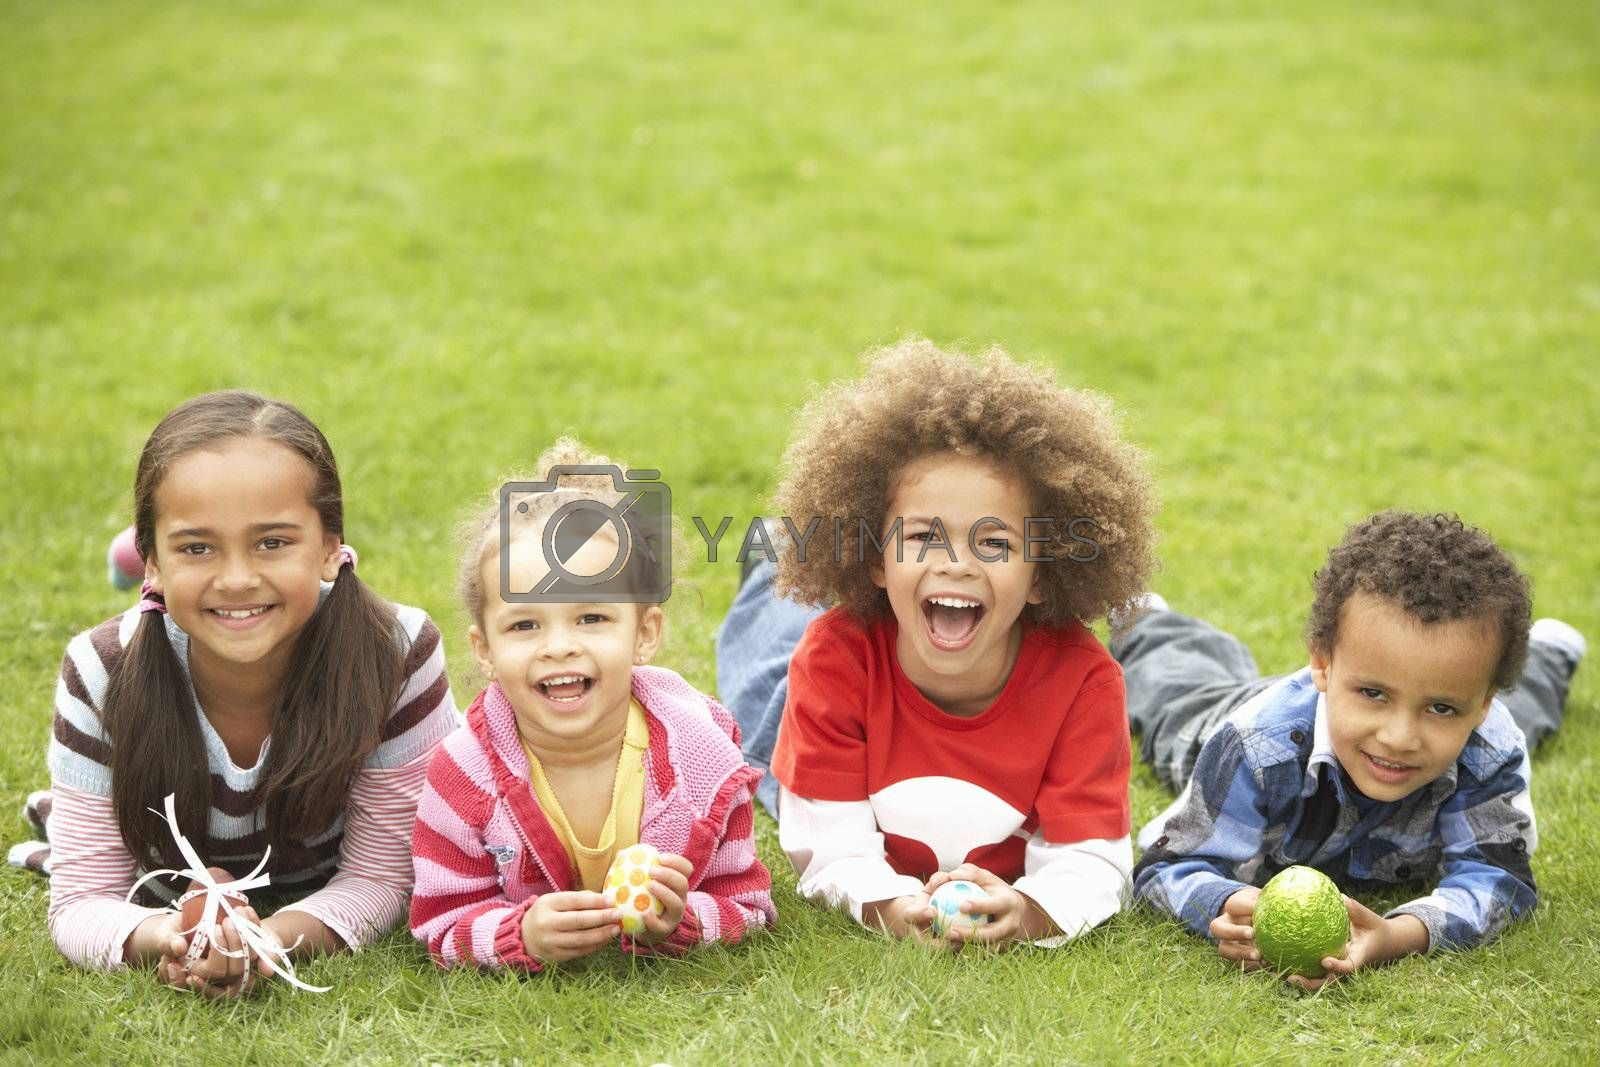 Royalty free image of Group Of Children Laying On Grass With Easter Eggs by omg_images